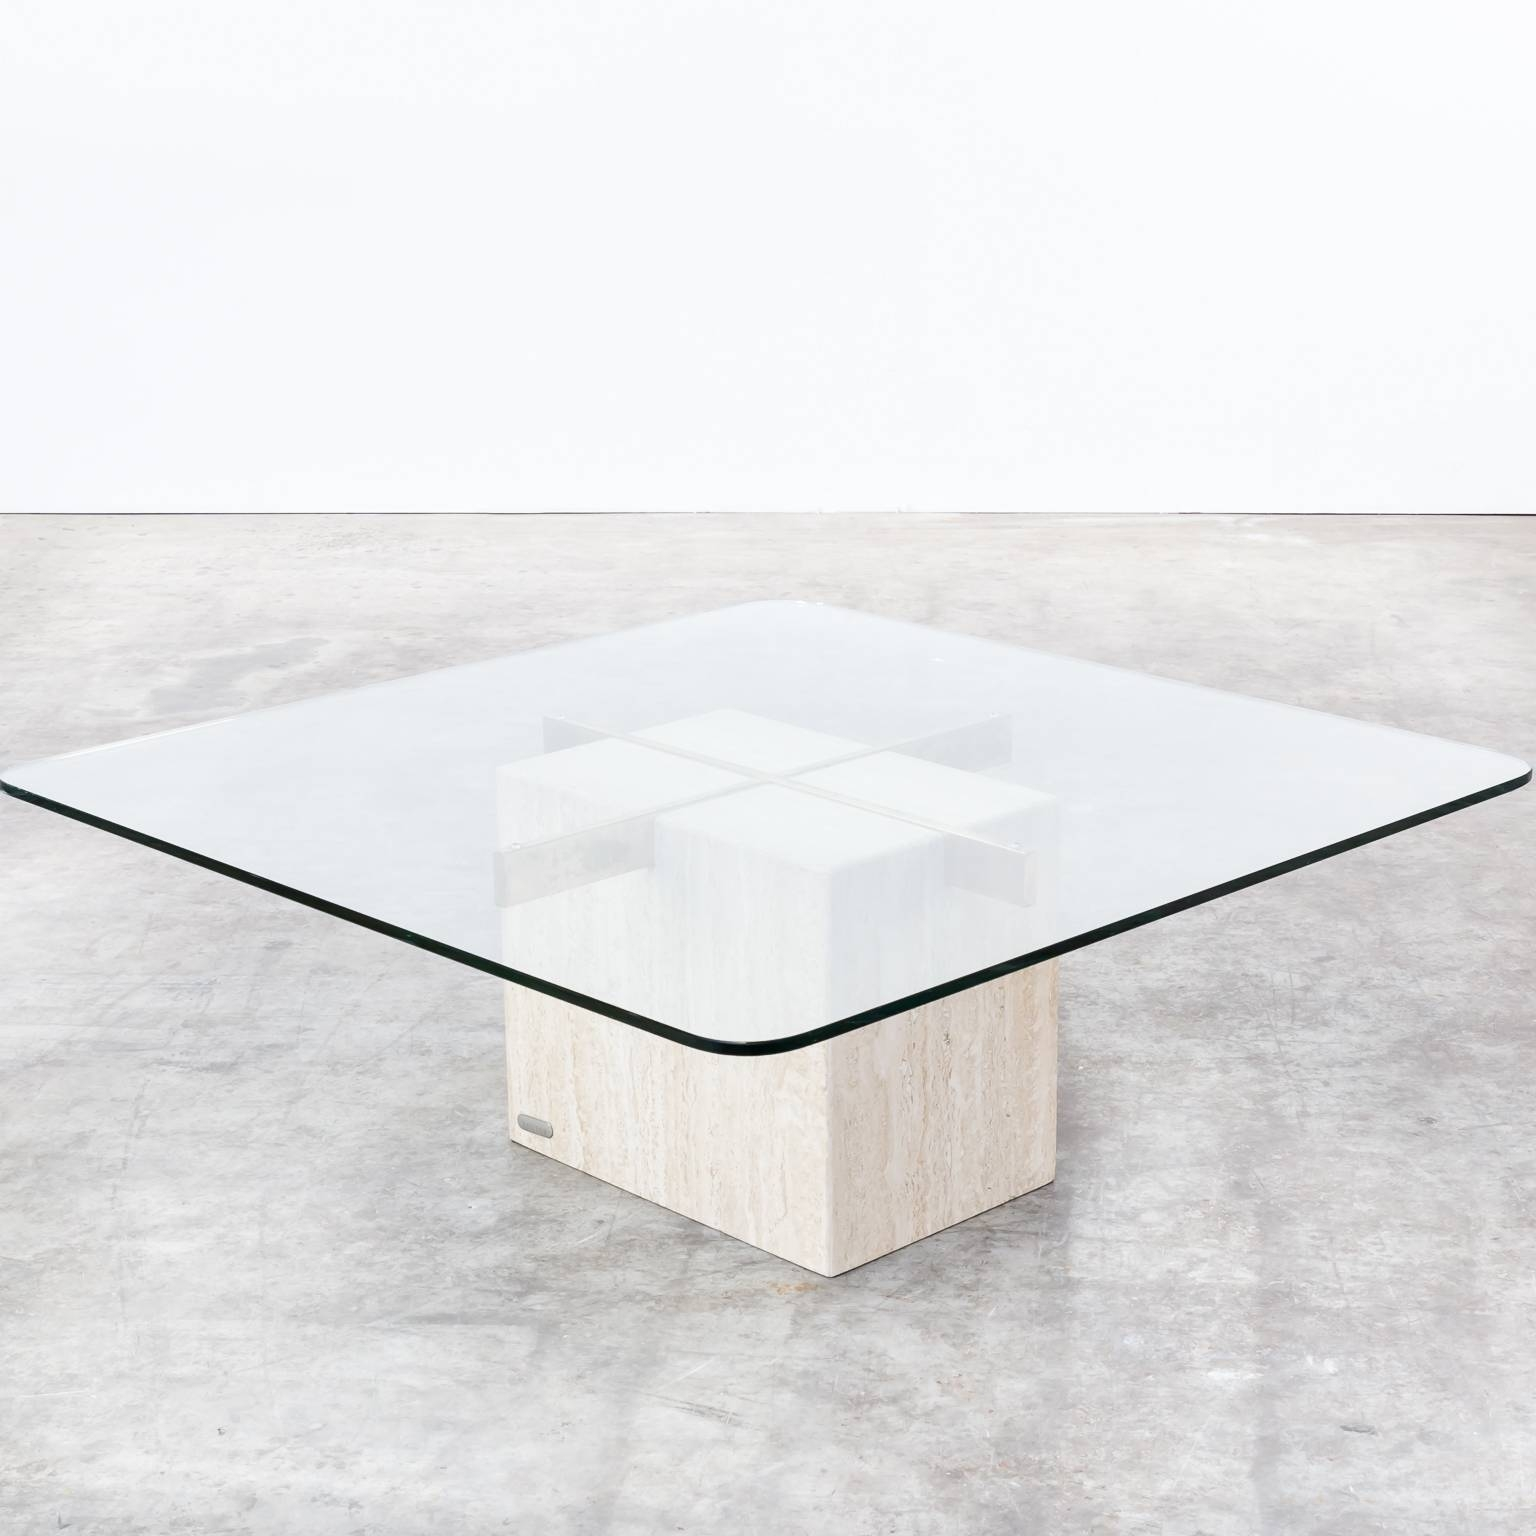 Wonderful Marble Base Glass Top Coffee Table Part - 7: 70S Artedi Italian Travertine Base, Glass Top Coffee Table | Barbmama  Pertaining To Marble Base